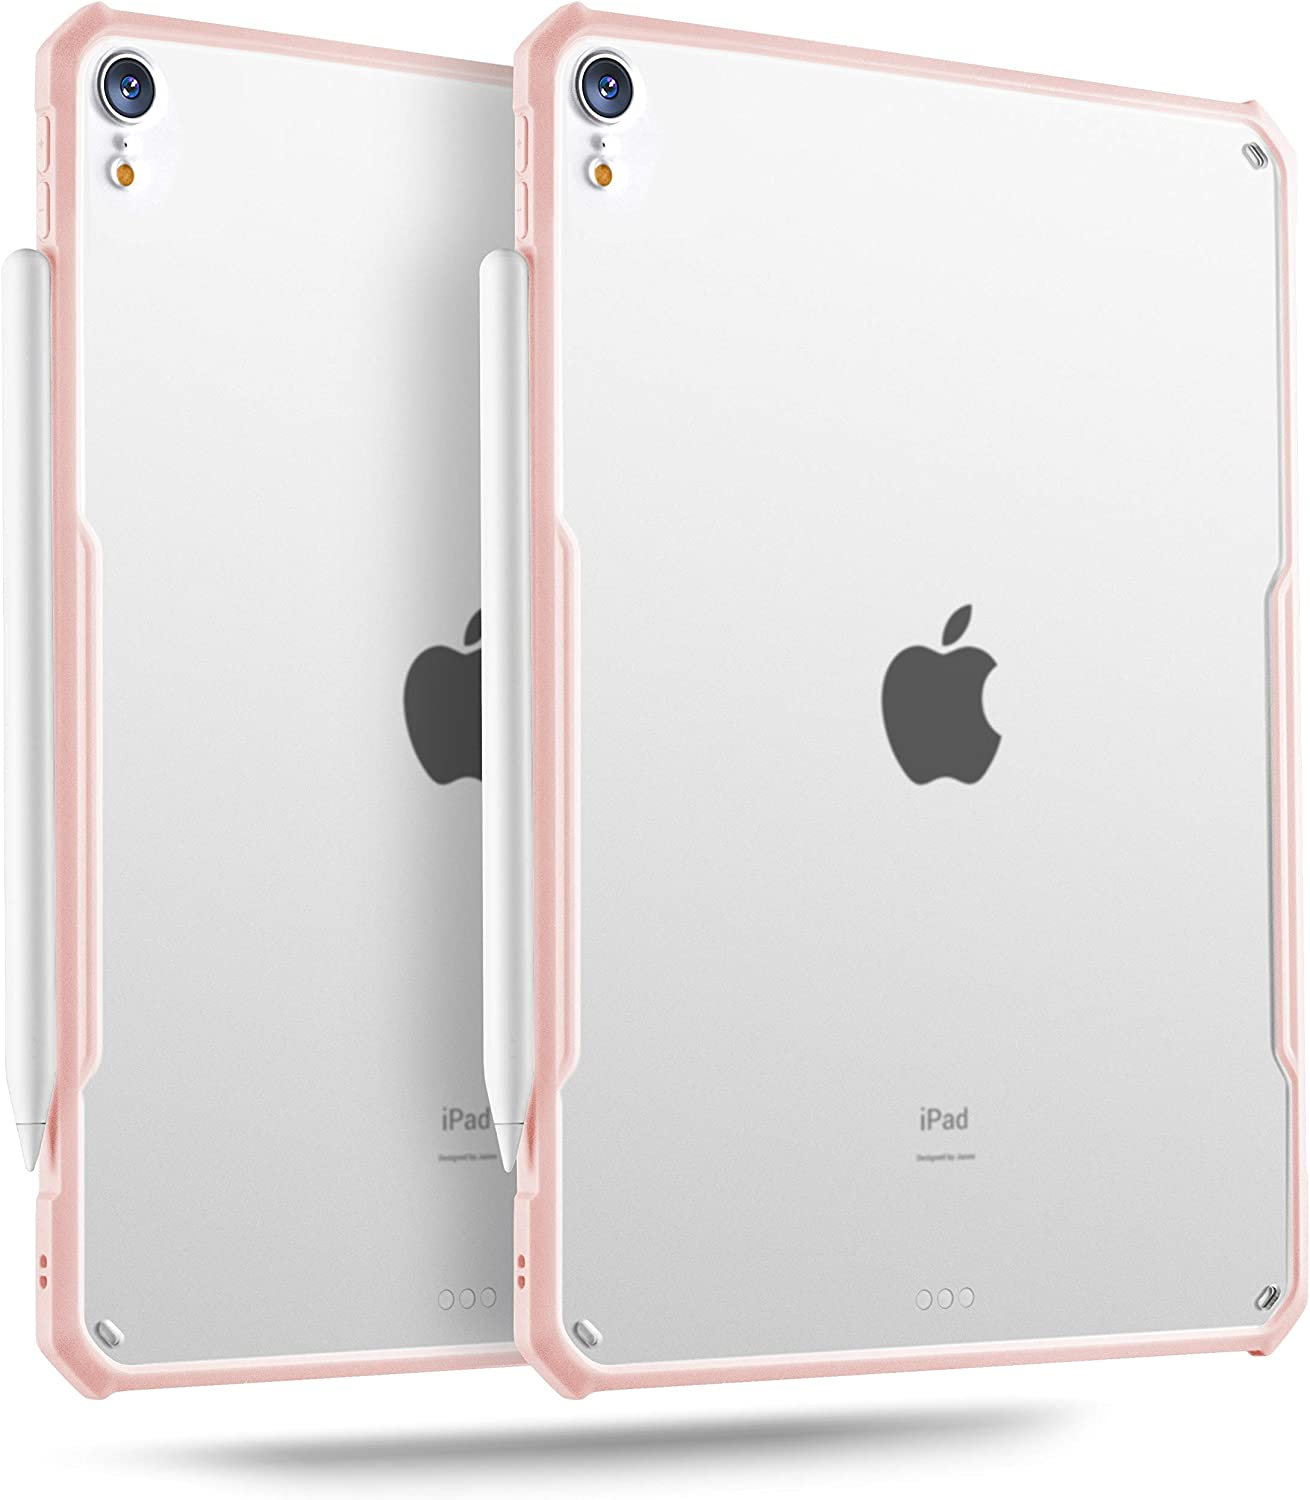 TineeOwl iPad Air 4 Case 10.9 inch 2020, Ultra Thin Matte Clear Case, Supports Apple Pencil Charging and Touch ID, TPU Bumper (Pink/Matte Back)